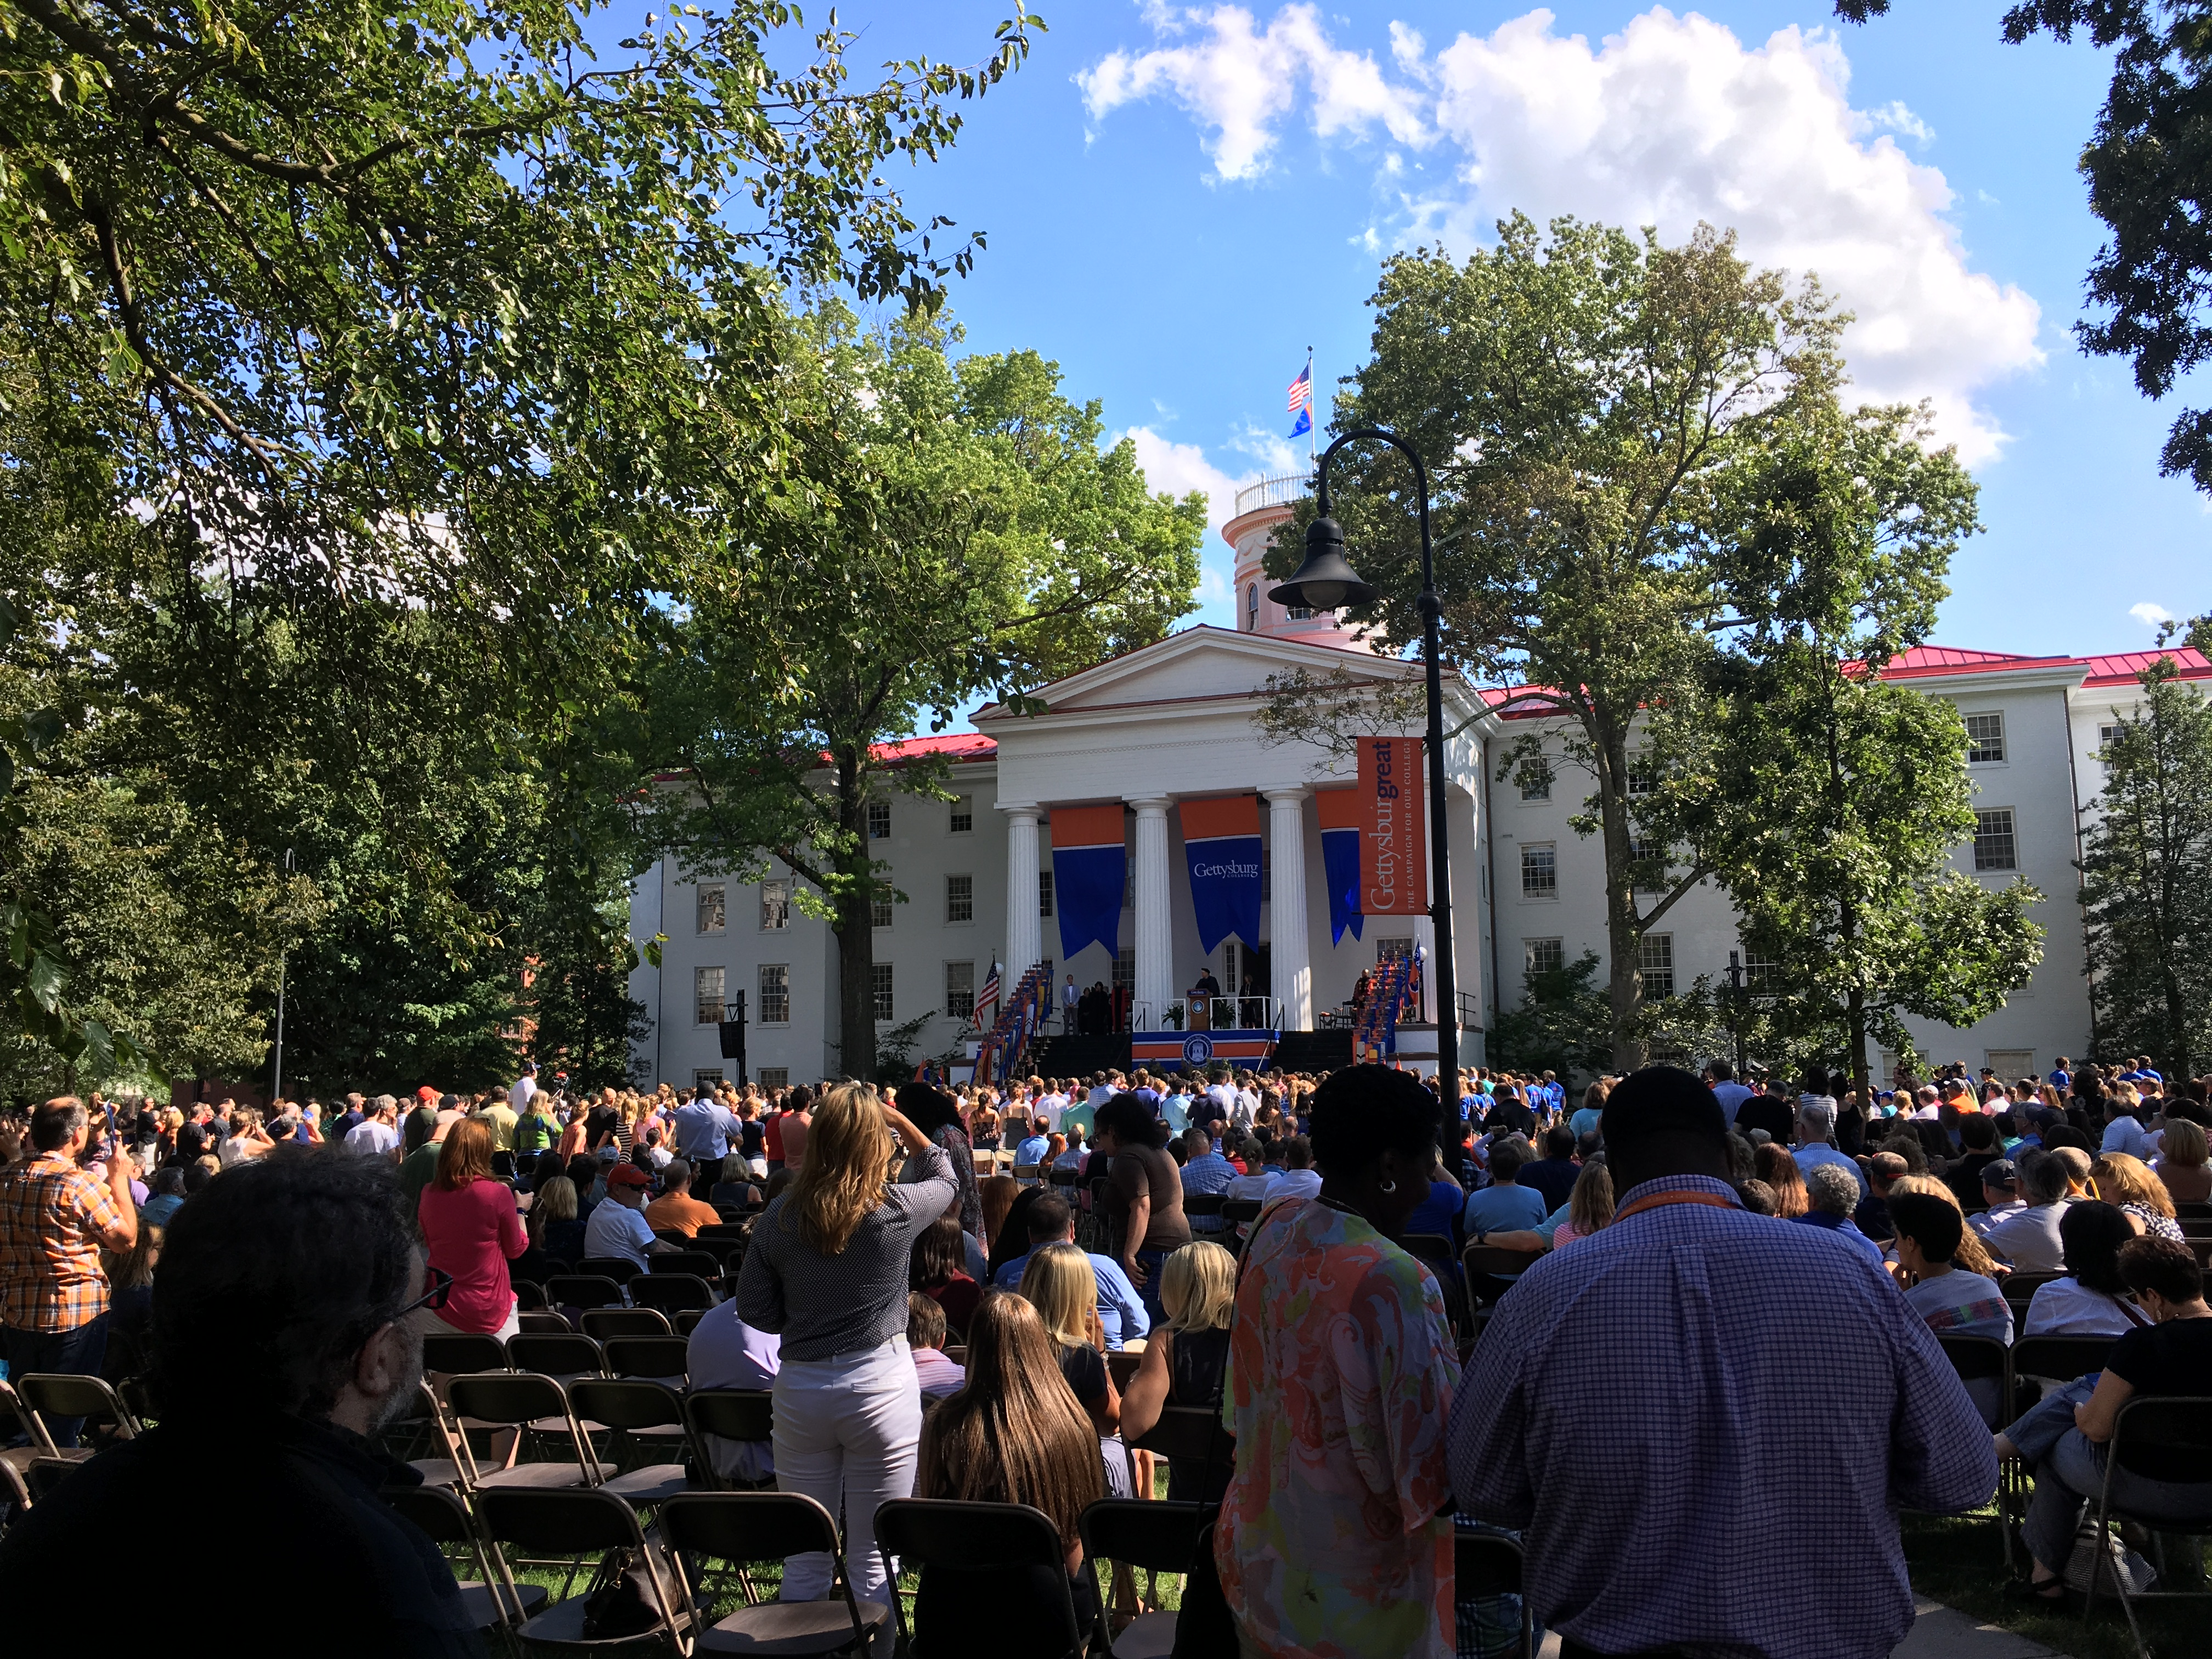 The view of the crowd at Convocation Wednesday Photo Jamie Welch / The Gettysburgian